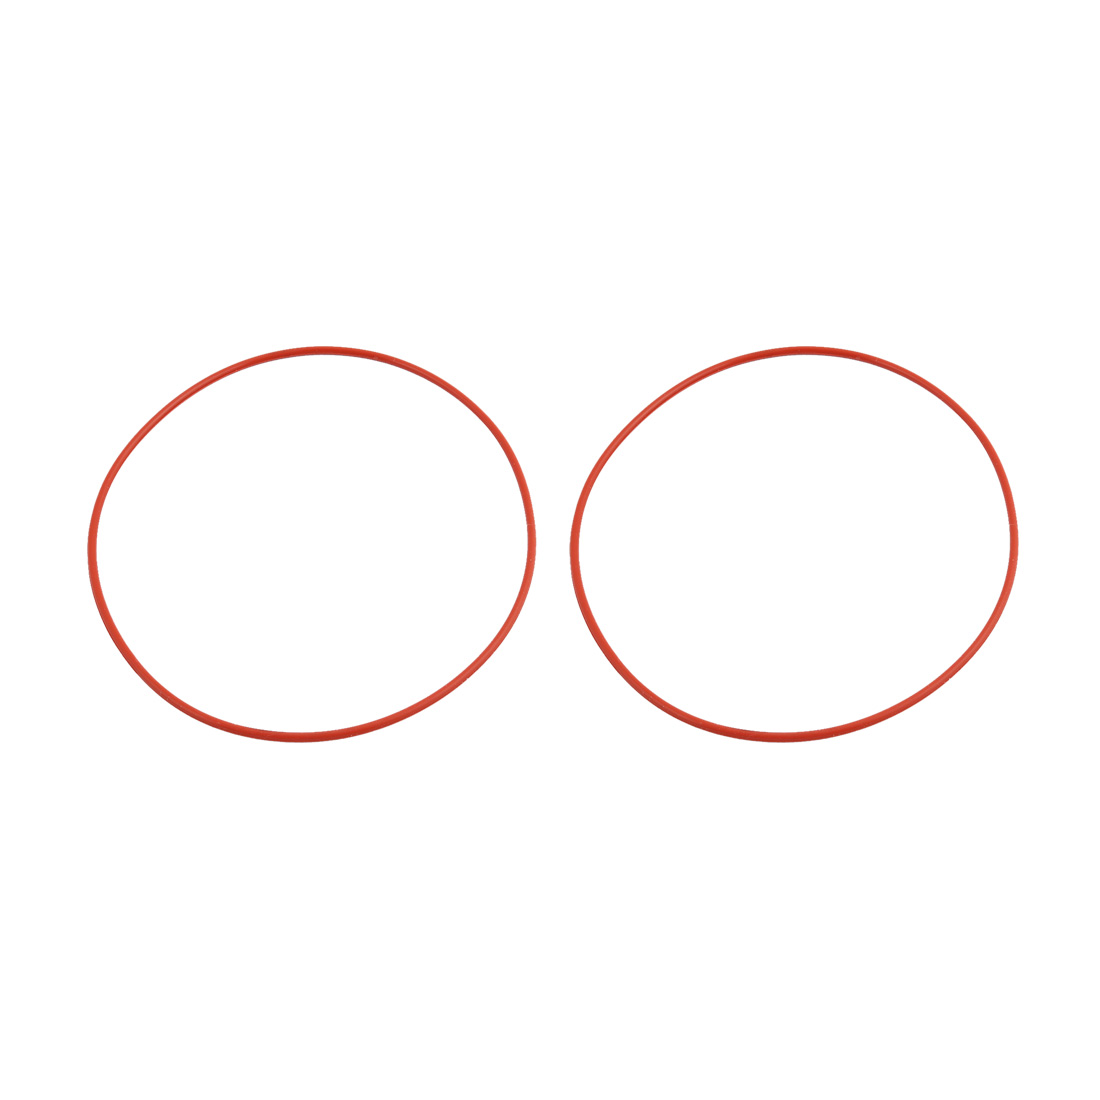 2pcs Red Round Nitrile Butadiene Rubber NBR O-Ring 95mm OD 1.9mm Width